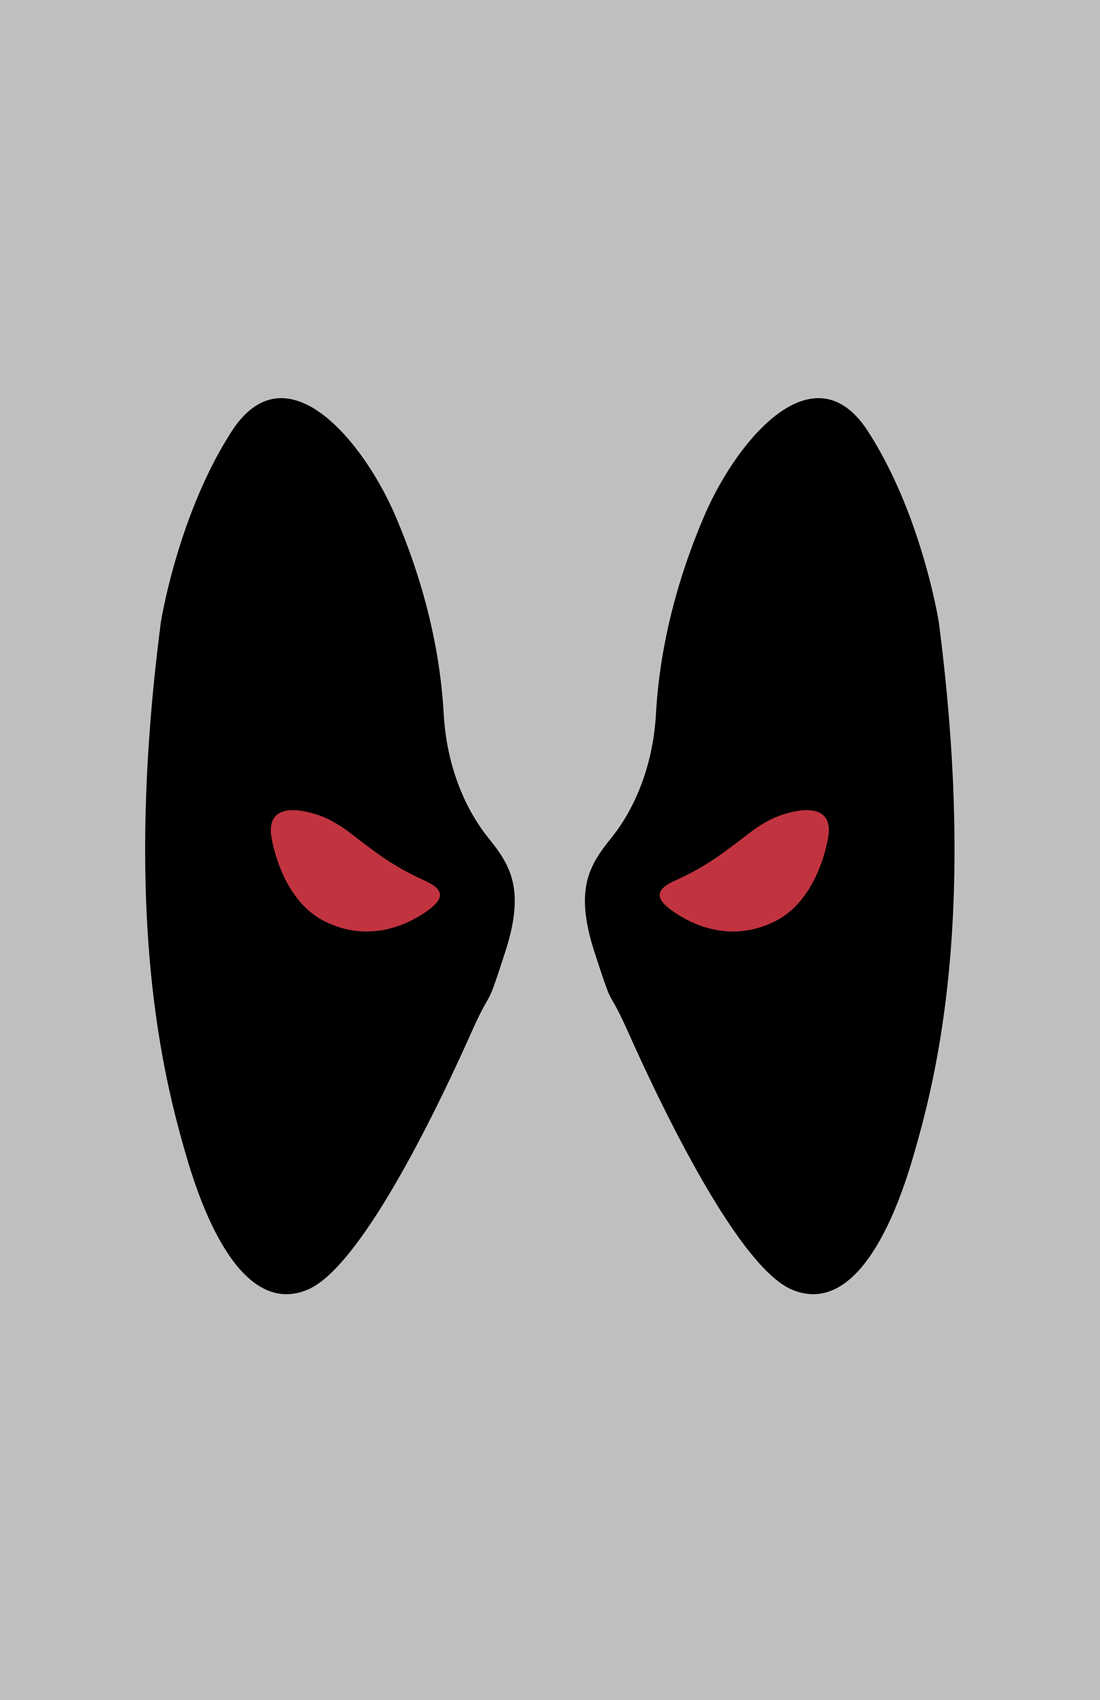 Deadpool X-Force minimalist mask design by Minimalist Heroes.